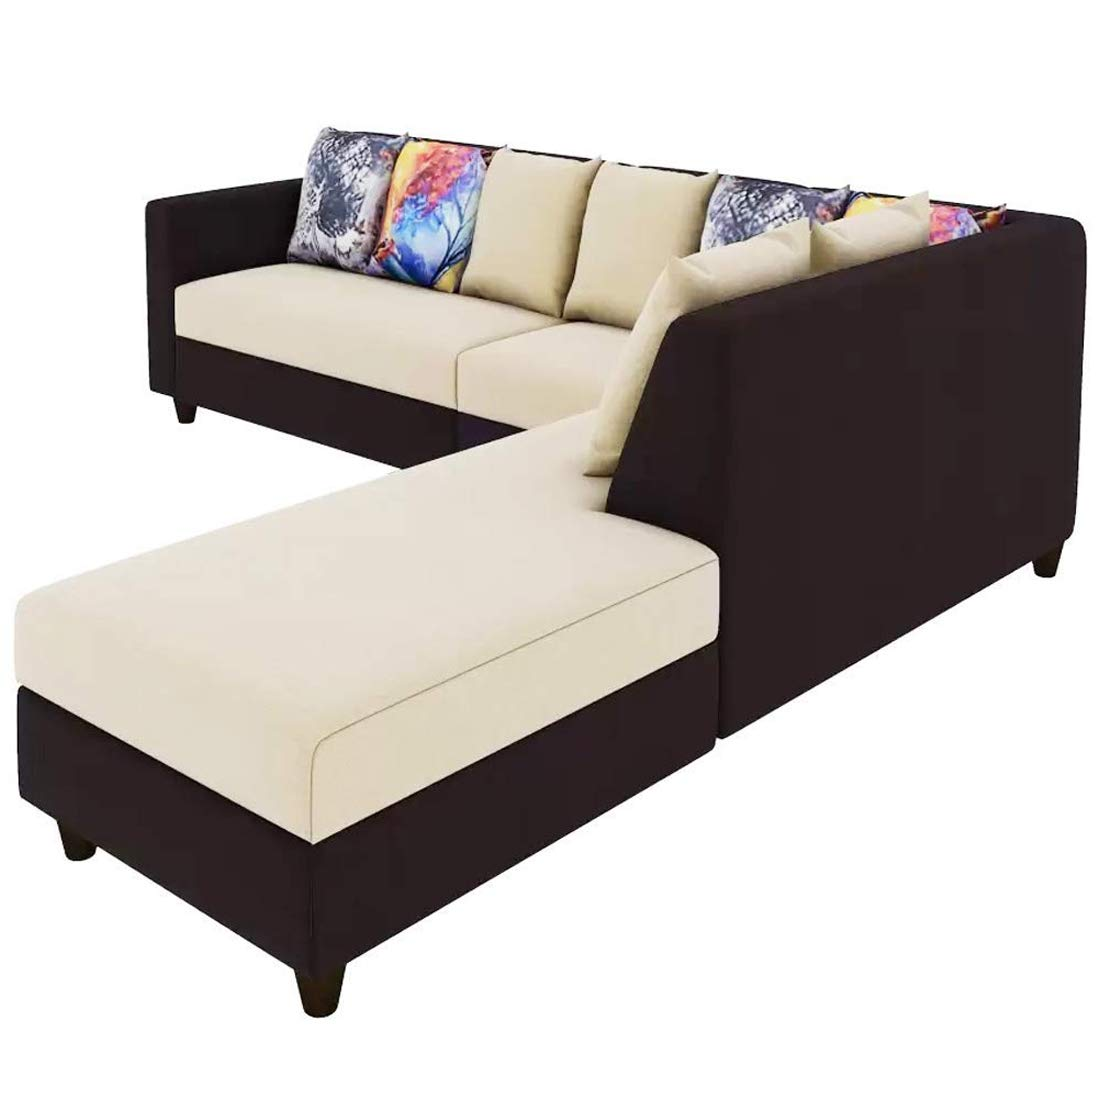 Famget l shape sofa extra large 6 Seater Sofa (Cream-Brown)